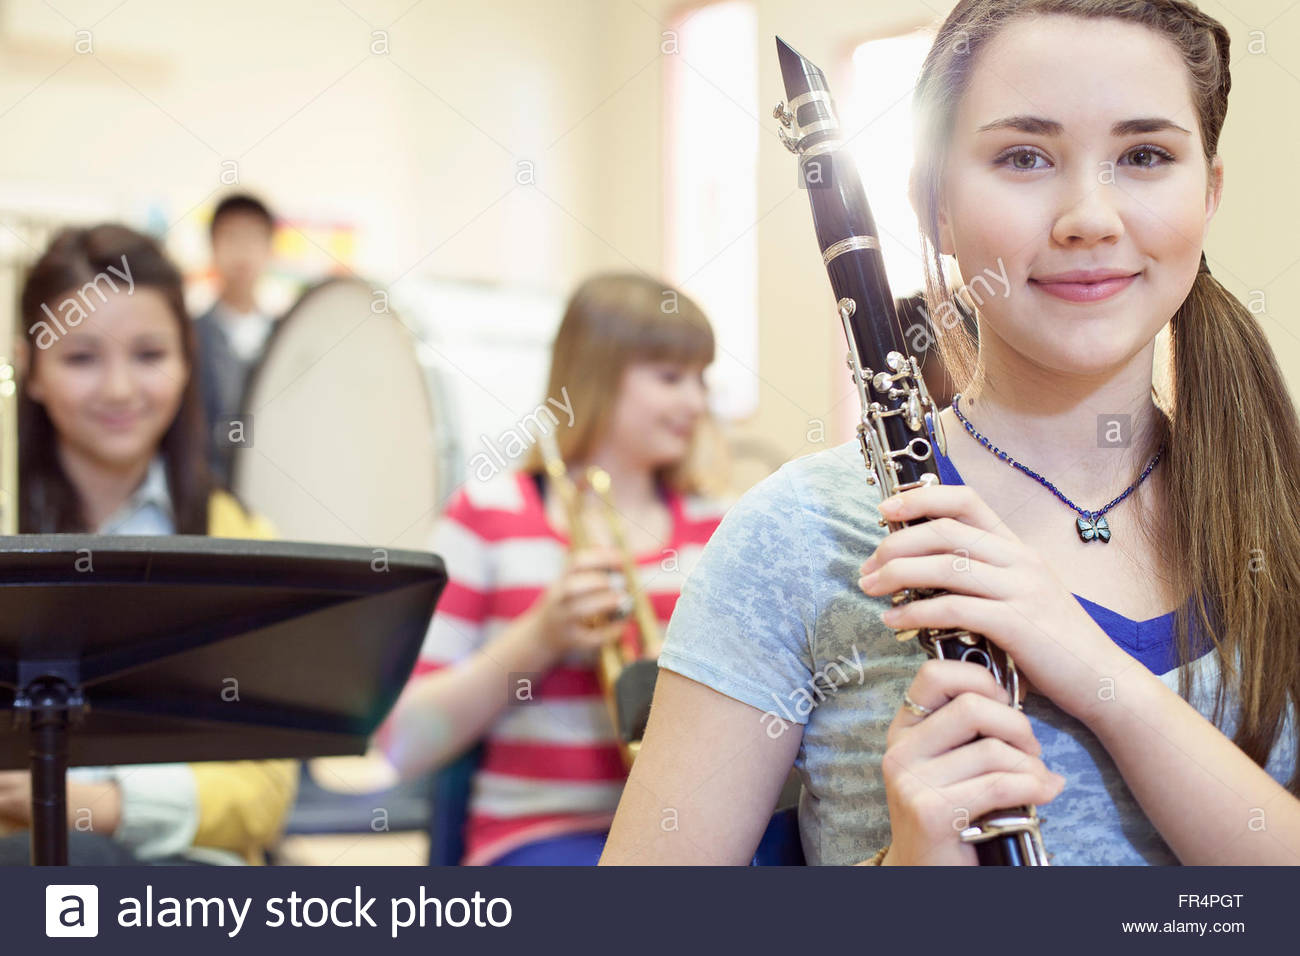 portrait of pretty school band member holding clarinet - Stock Image